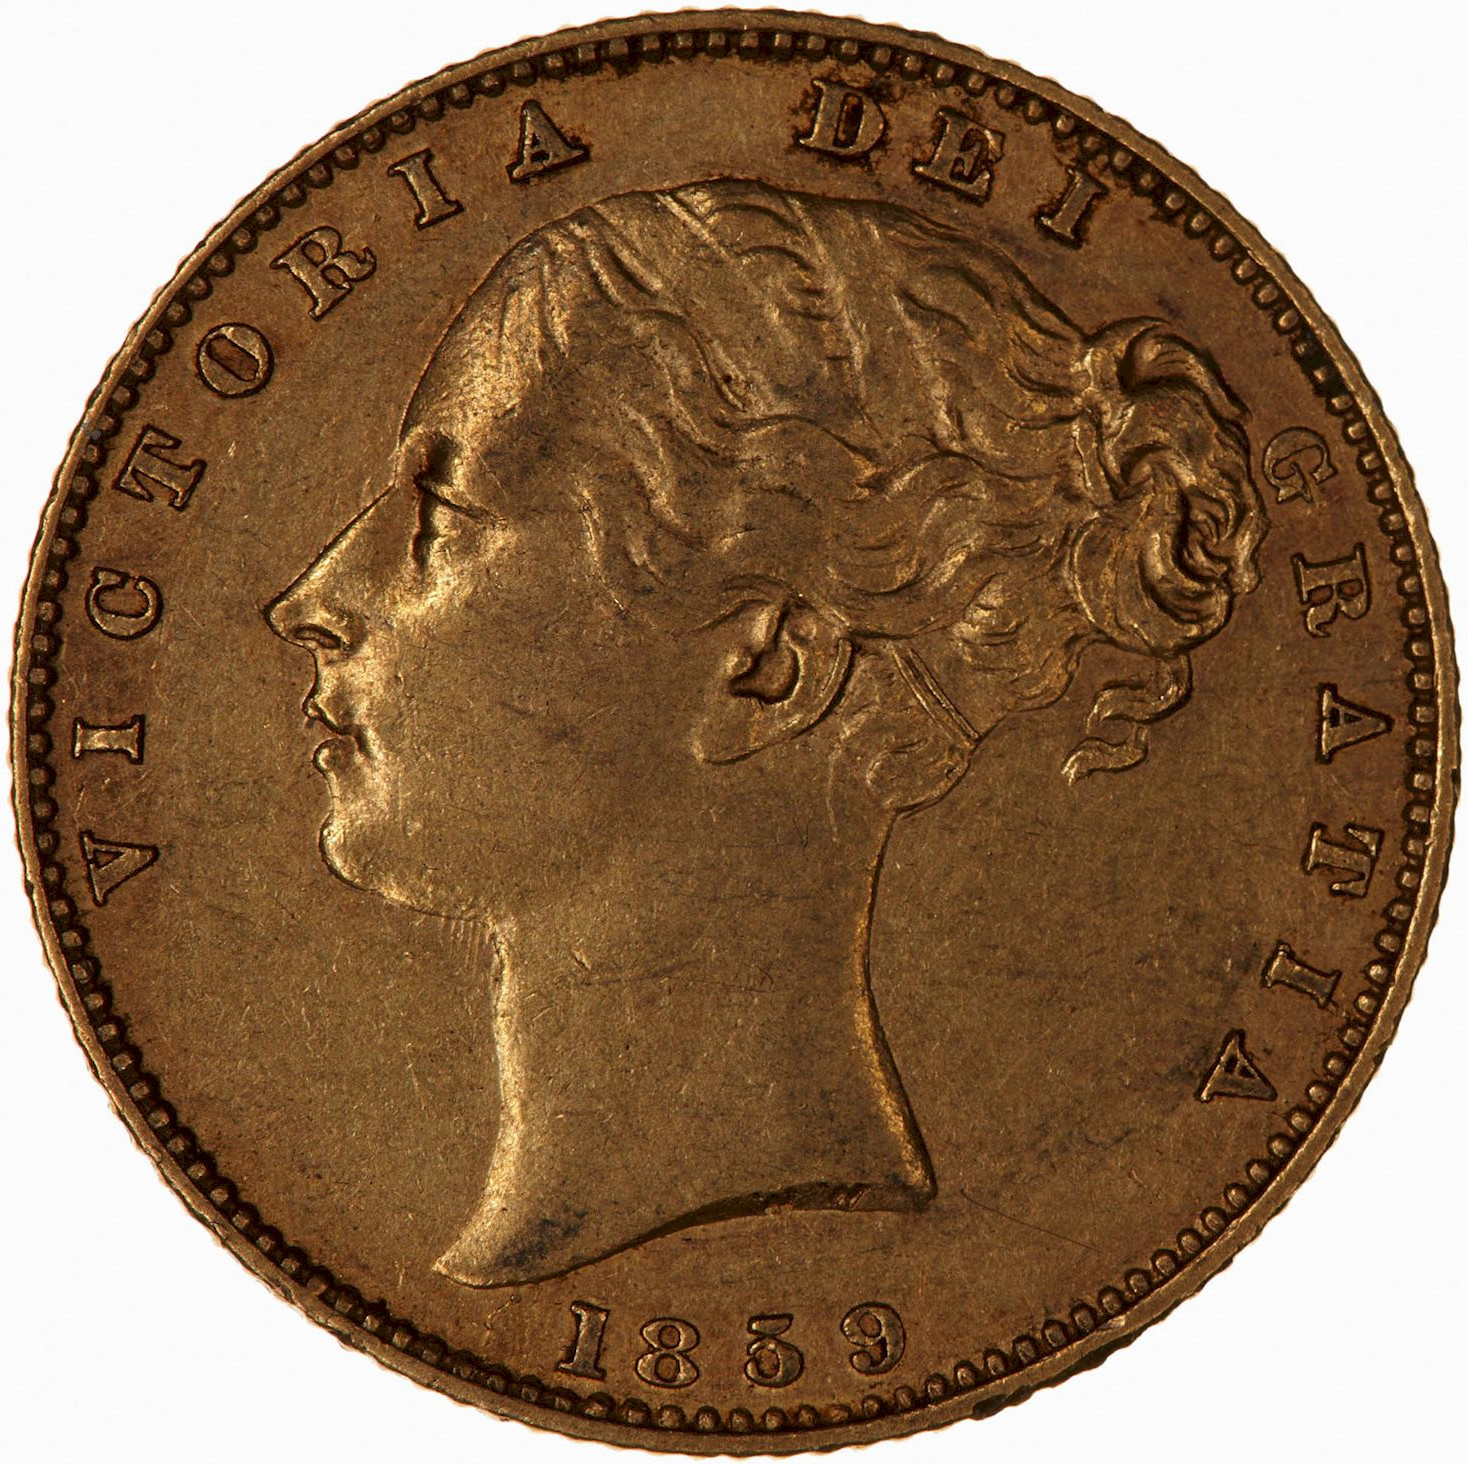 Sovereign 1859: Photo Coin - Sovereign (Ansell), Queen Victoria, Great Britain, 1859